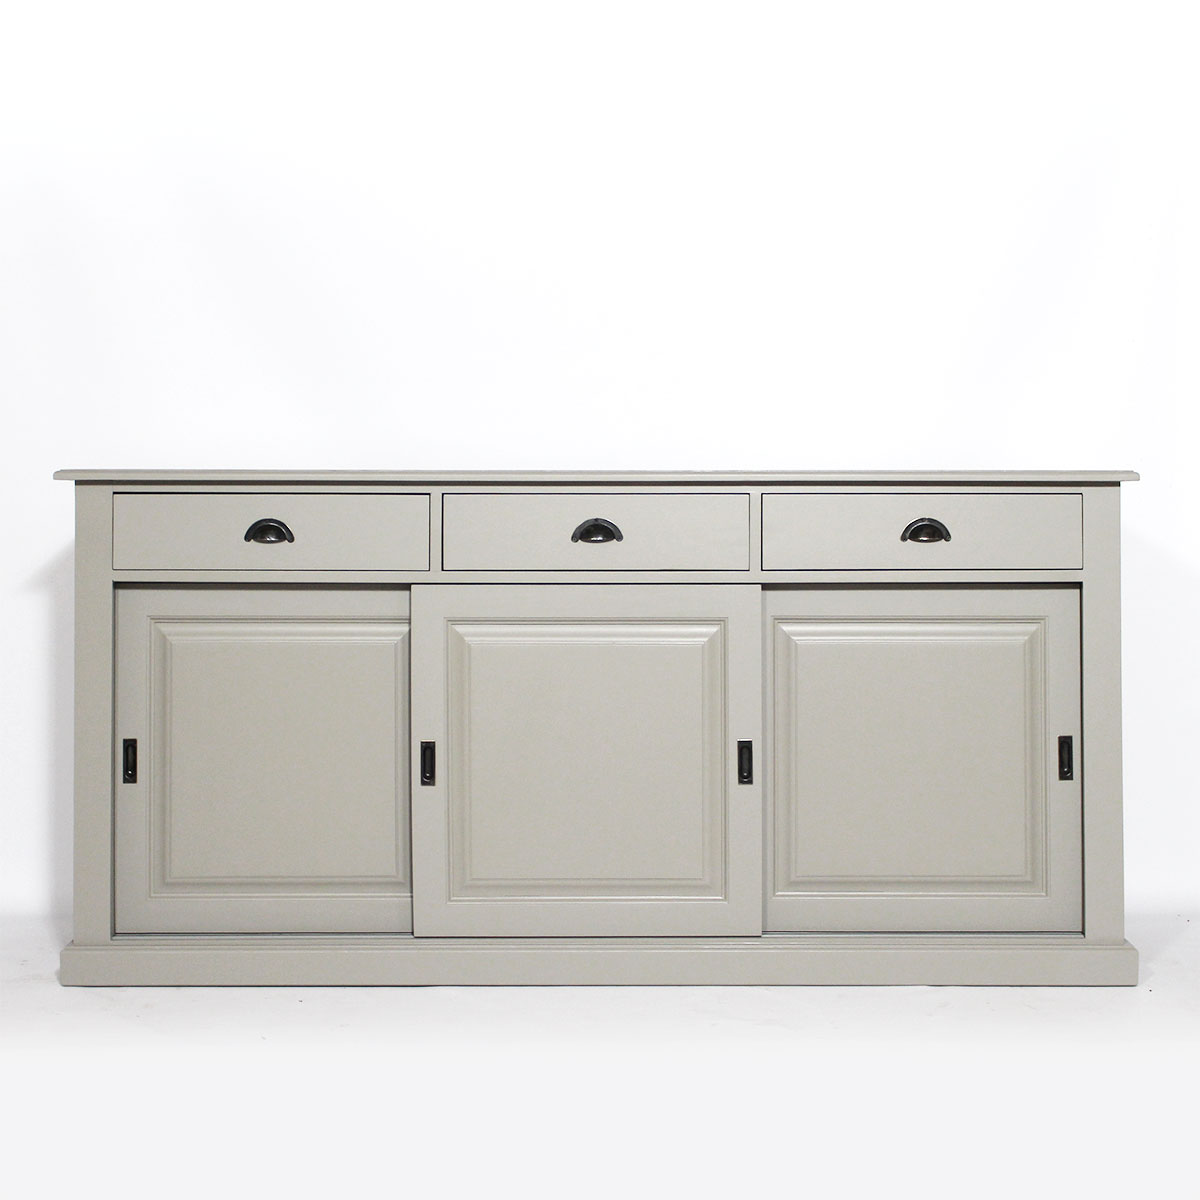 enfilade 3 portes coulissantes gris clair made in meubles. Black Bedroom Furniture Sets. Home Design Ideas